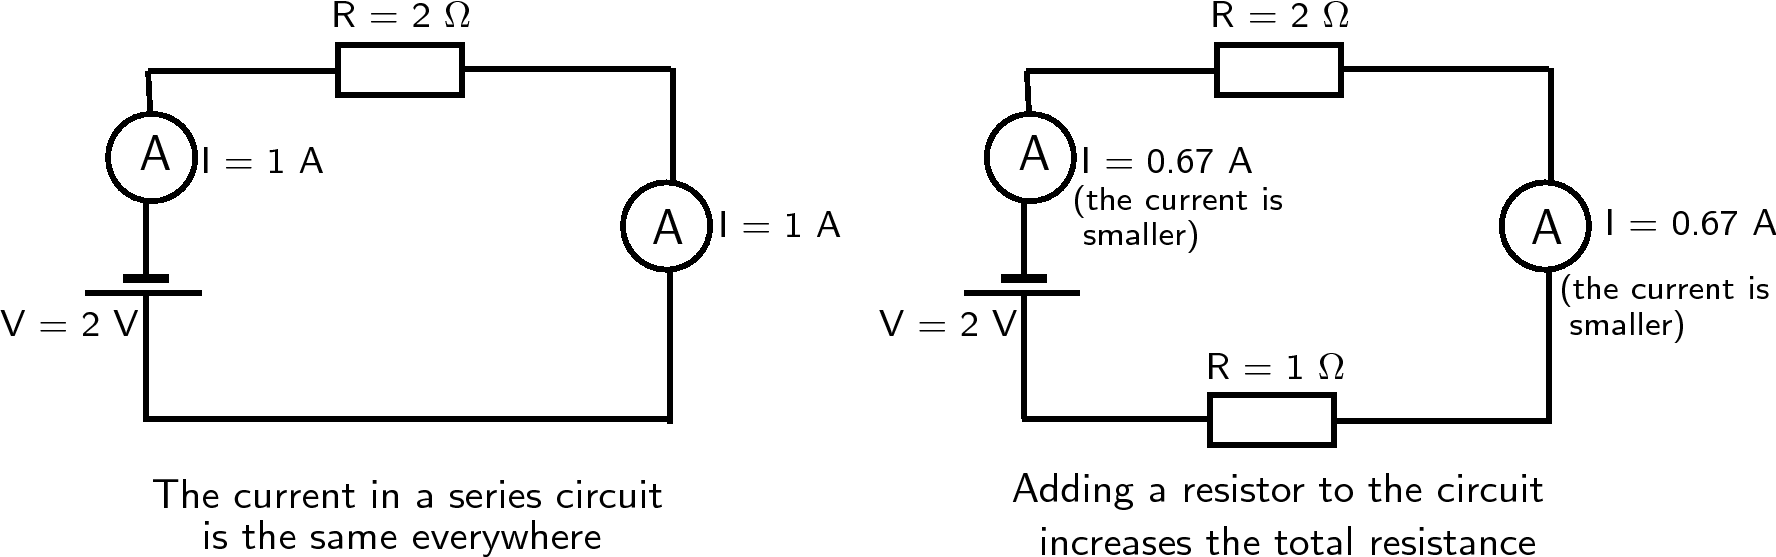 hight resolution of electric circuits grade 10 caps wiring diagram parallel decreases total